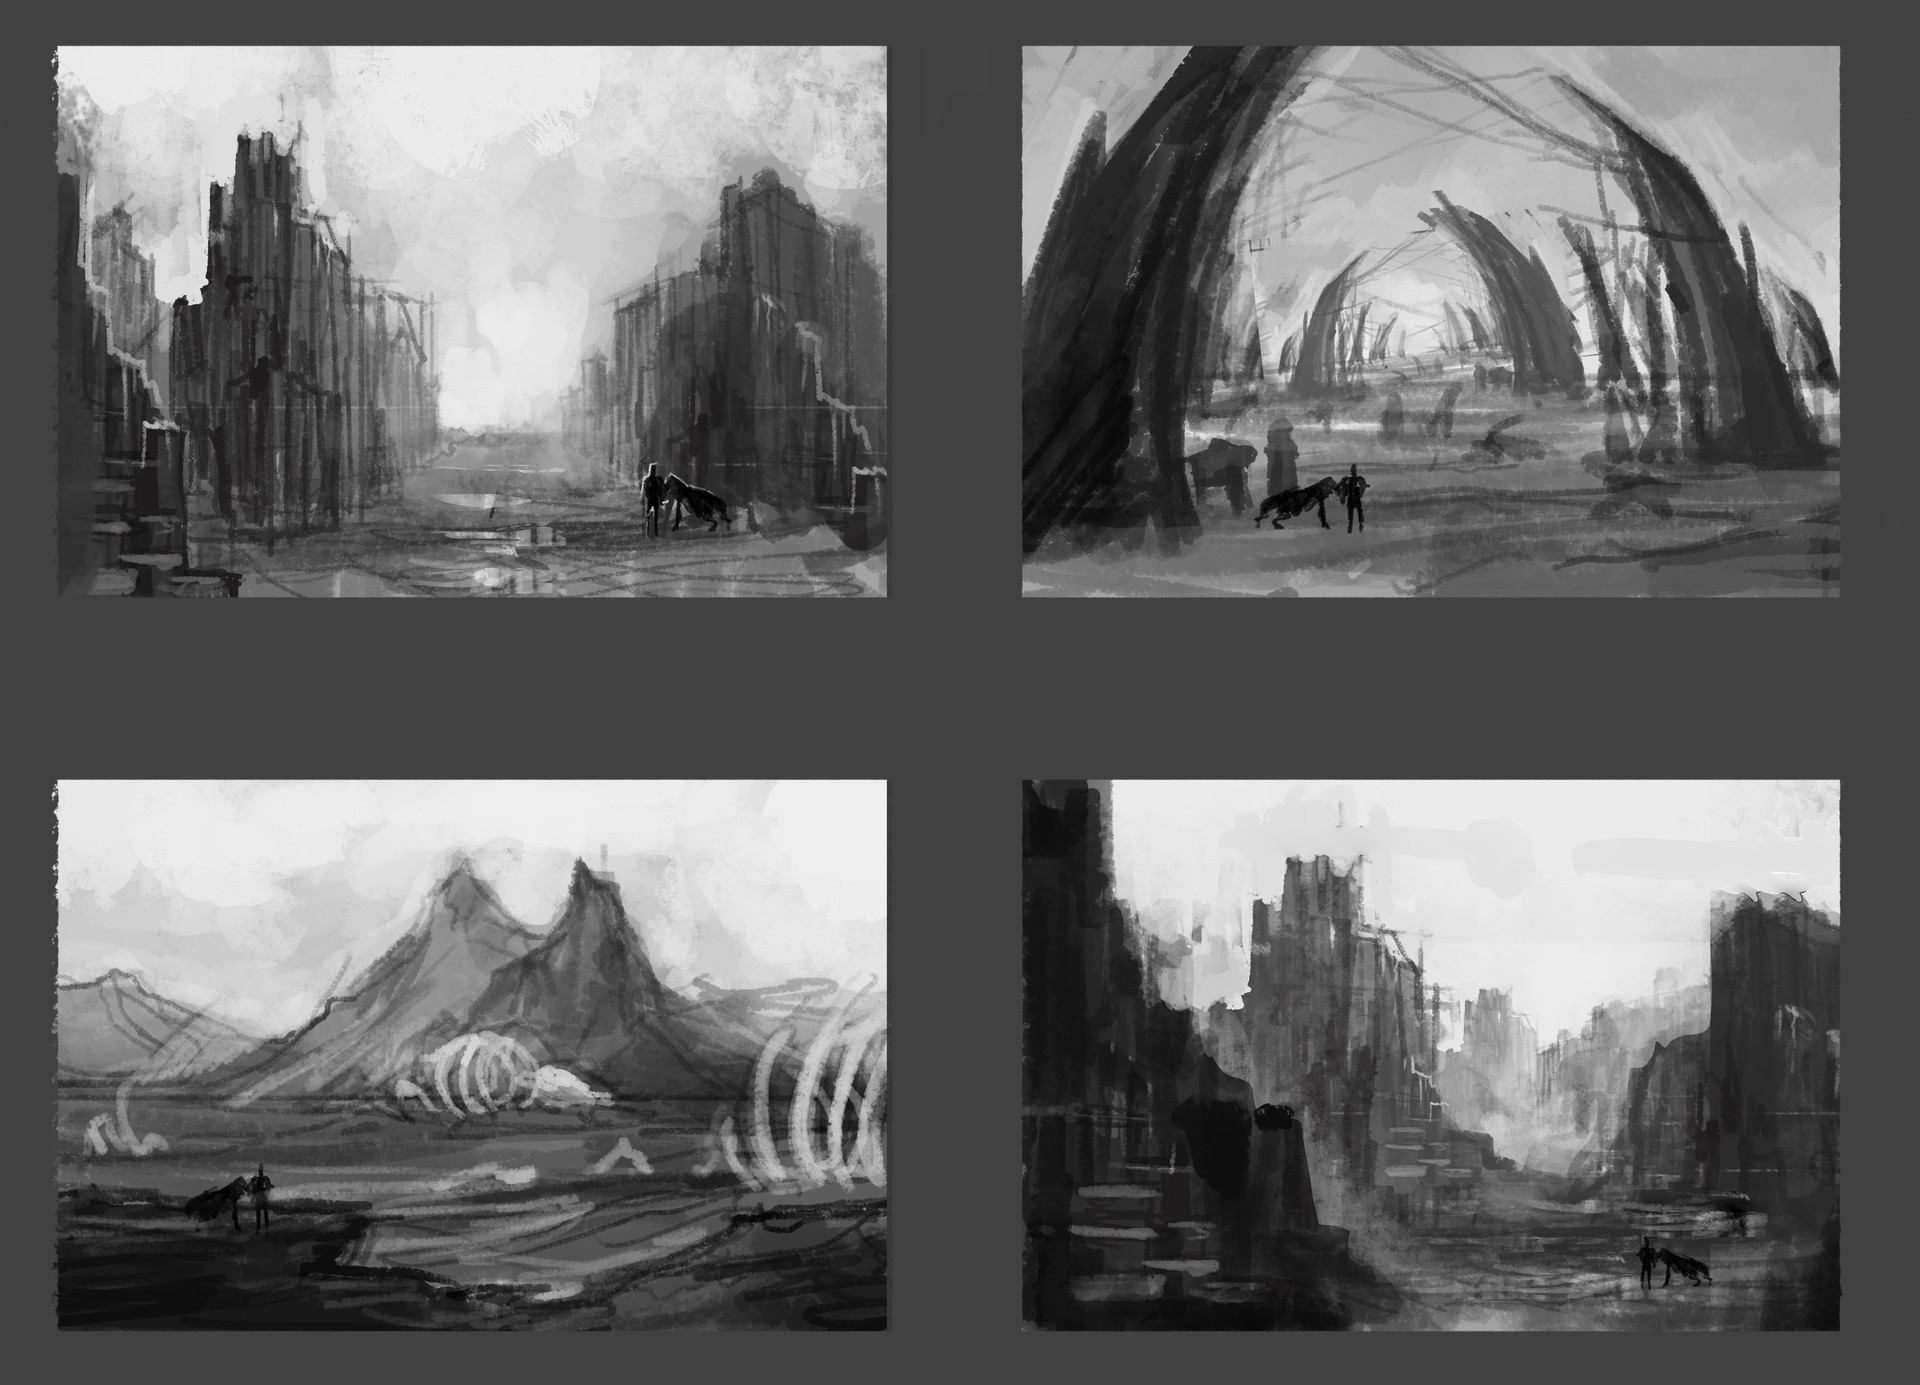 Thomas andy butnariu thumbnails2